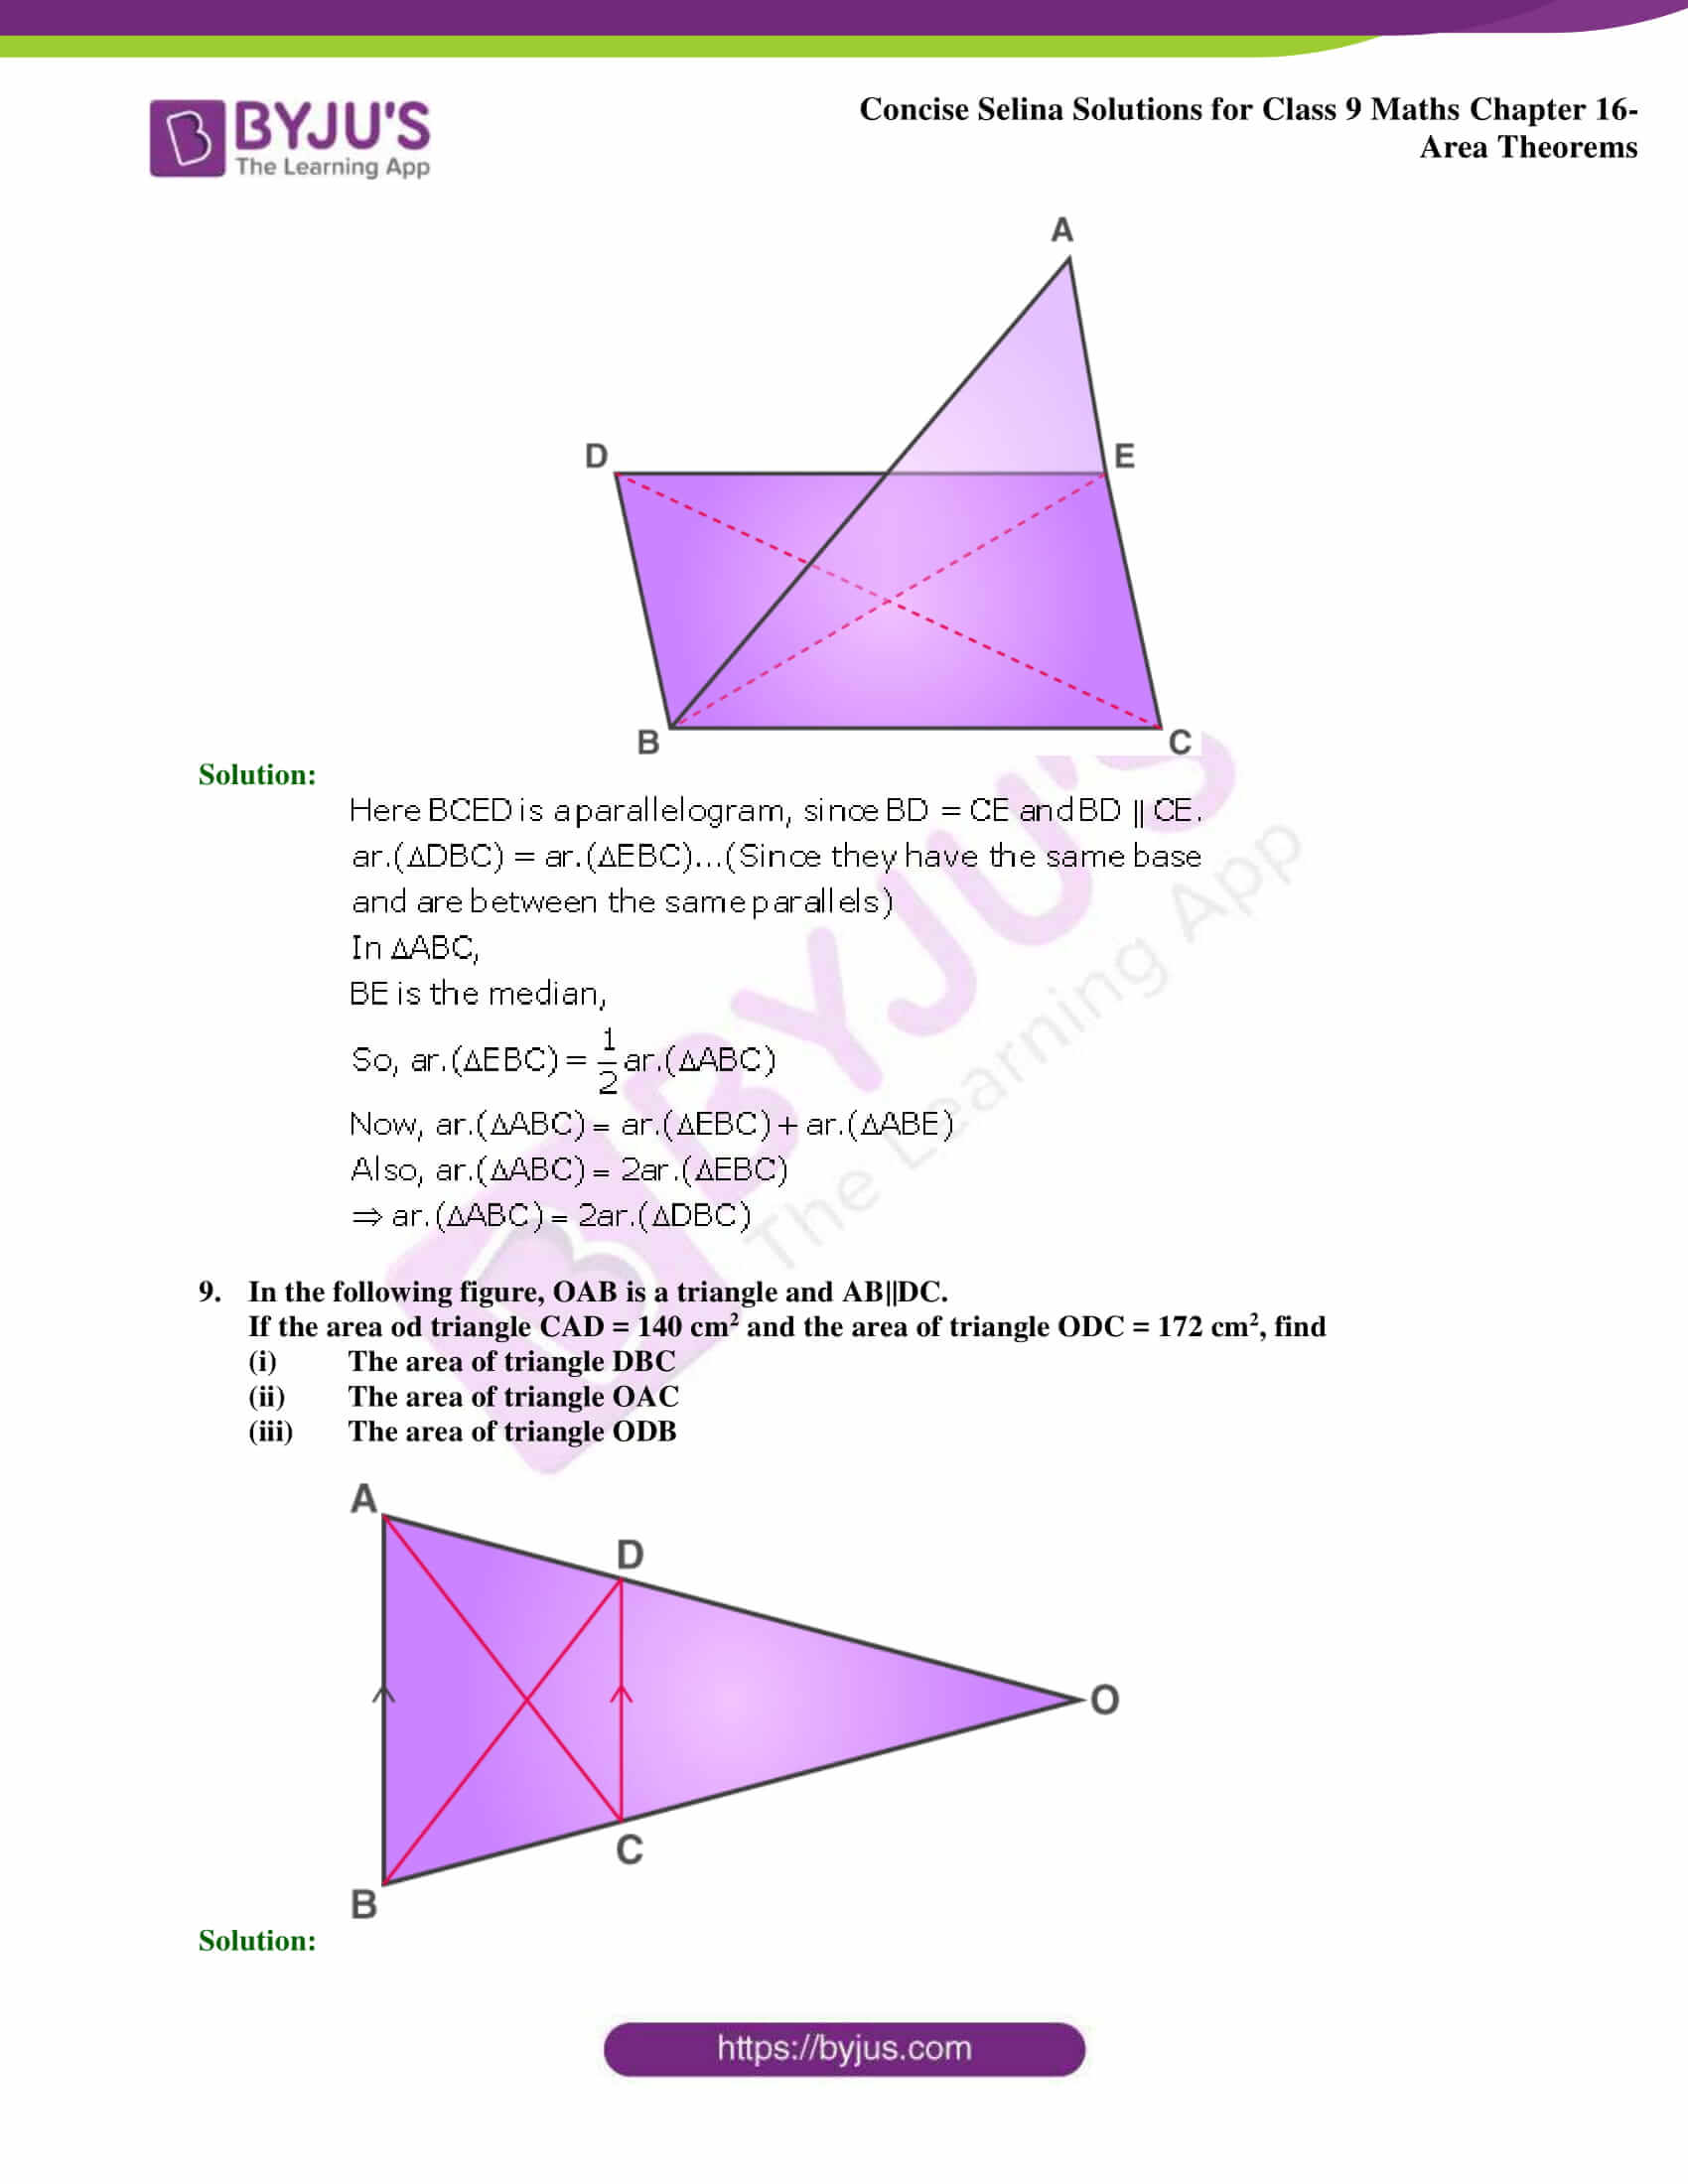 Concise Selina Solutions Class 9 Maths Chapter 16 Area Theorems part 30